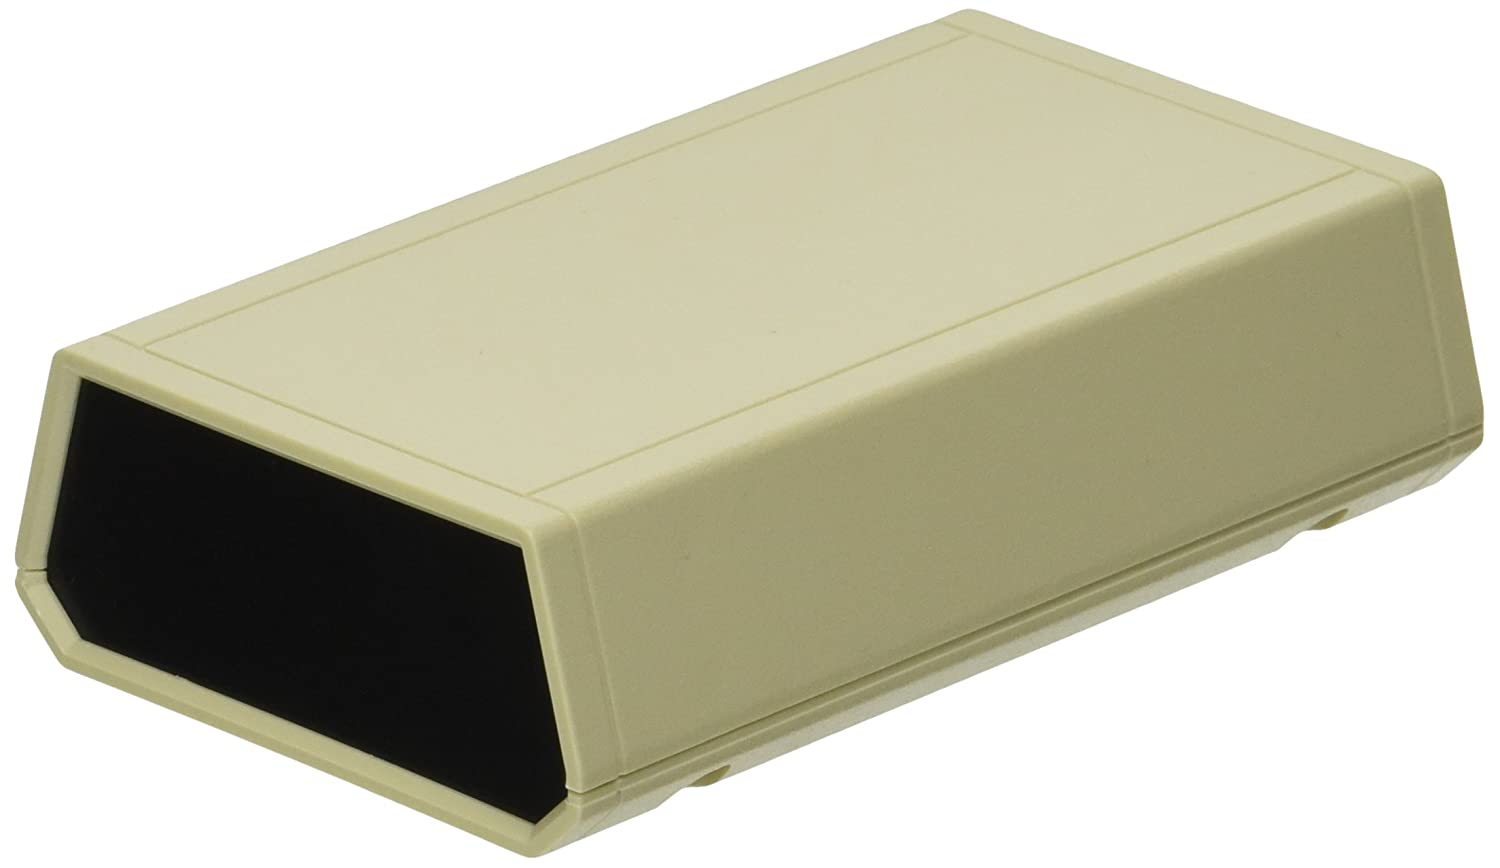 Almond Serpac A21 ABS Plastic Enclosure 4-1//4 Length x 2.60 Width x 1-1//8 Height